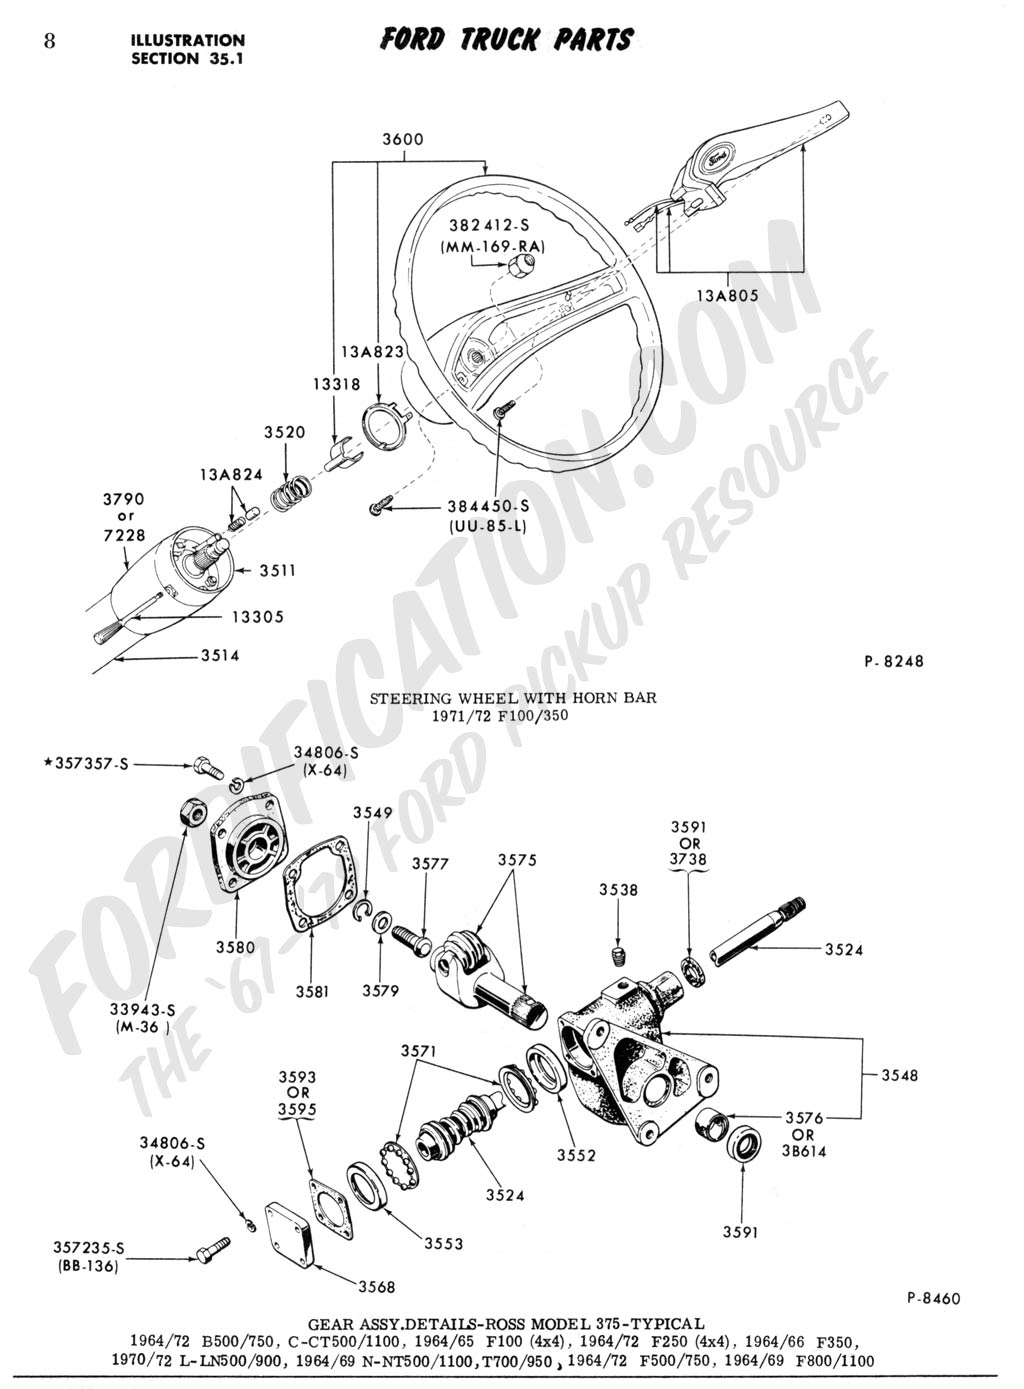 Ford F100 Wiring Diagram Collection